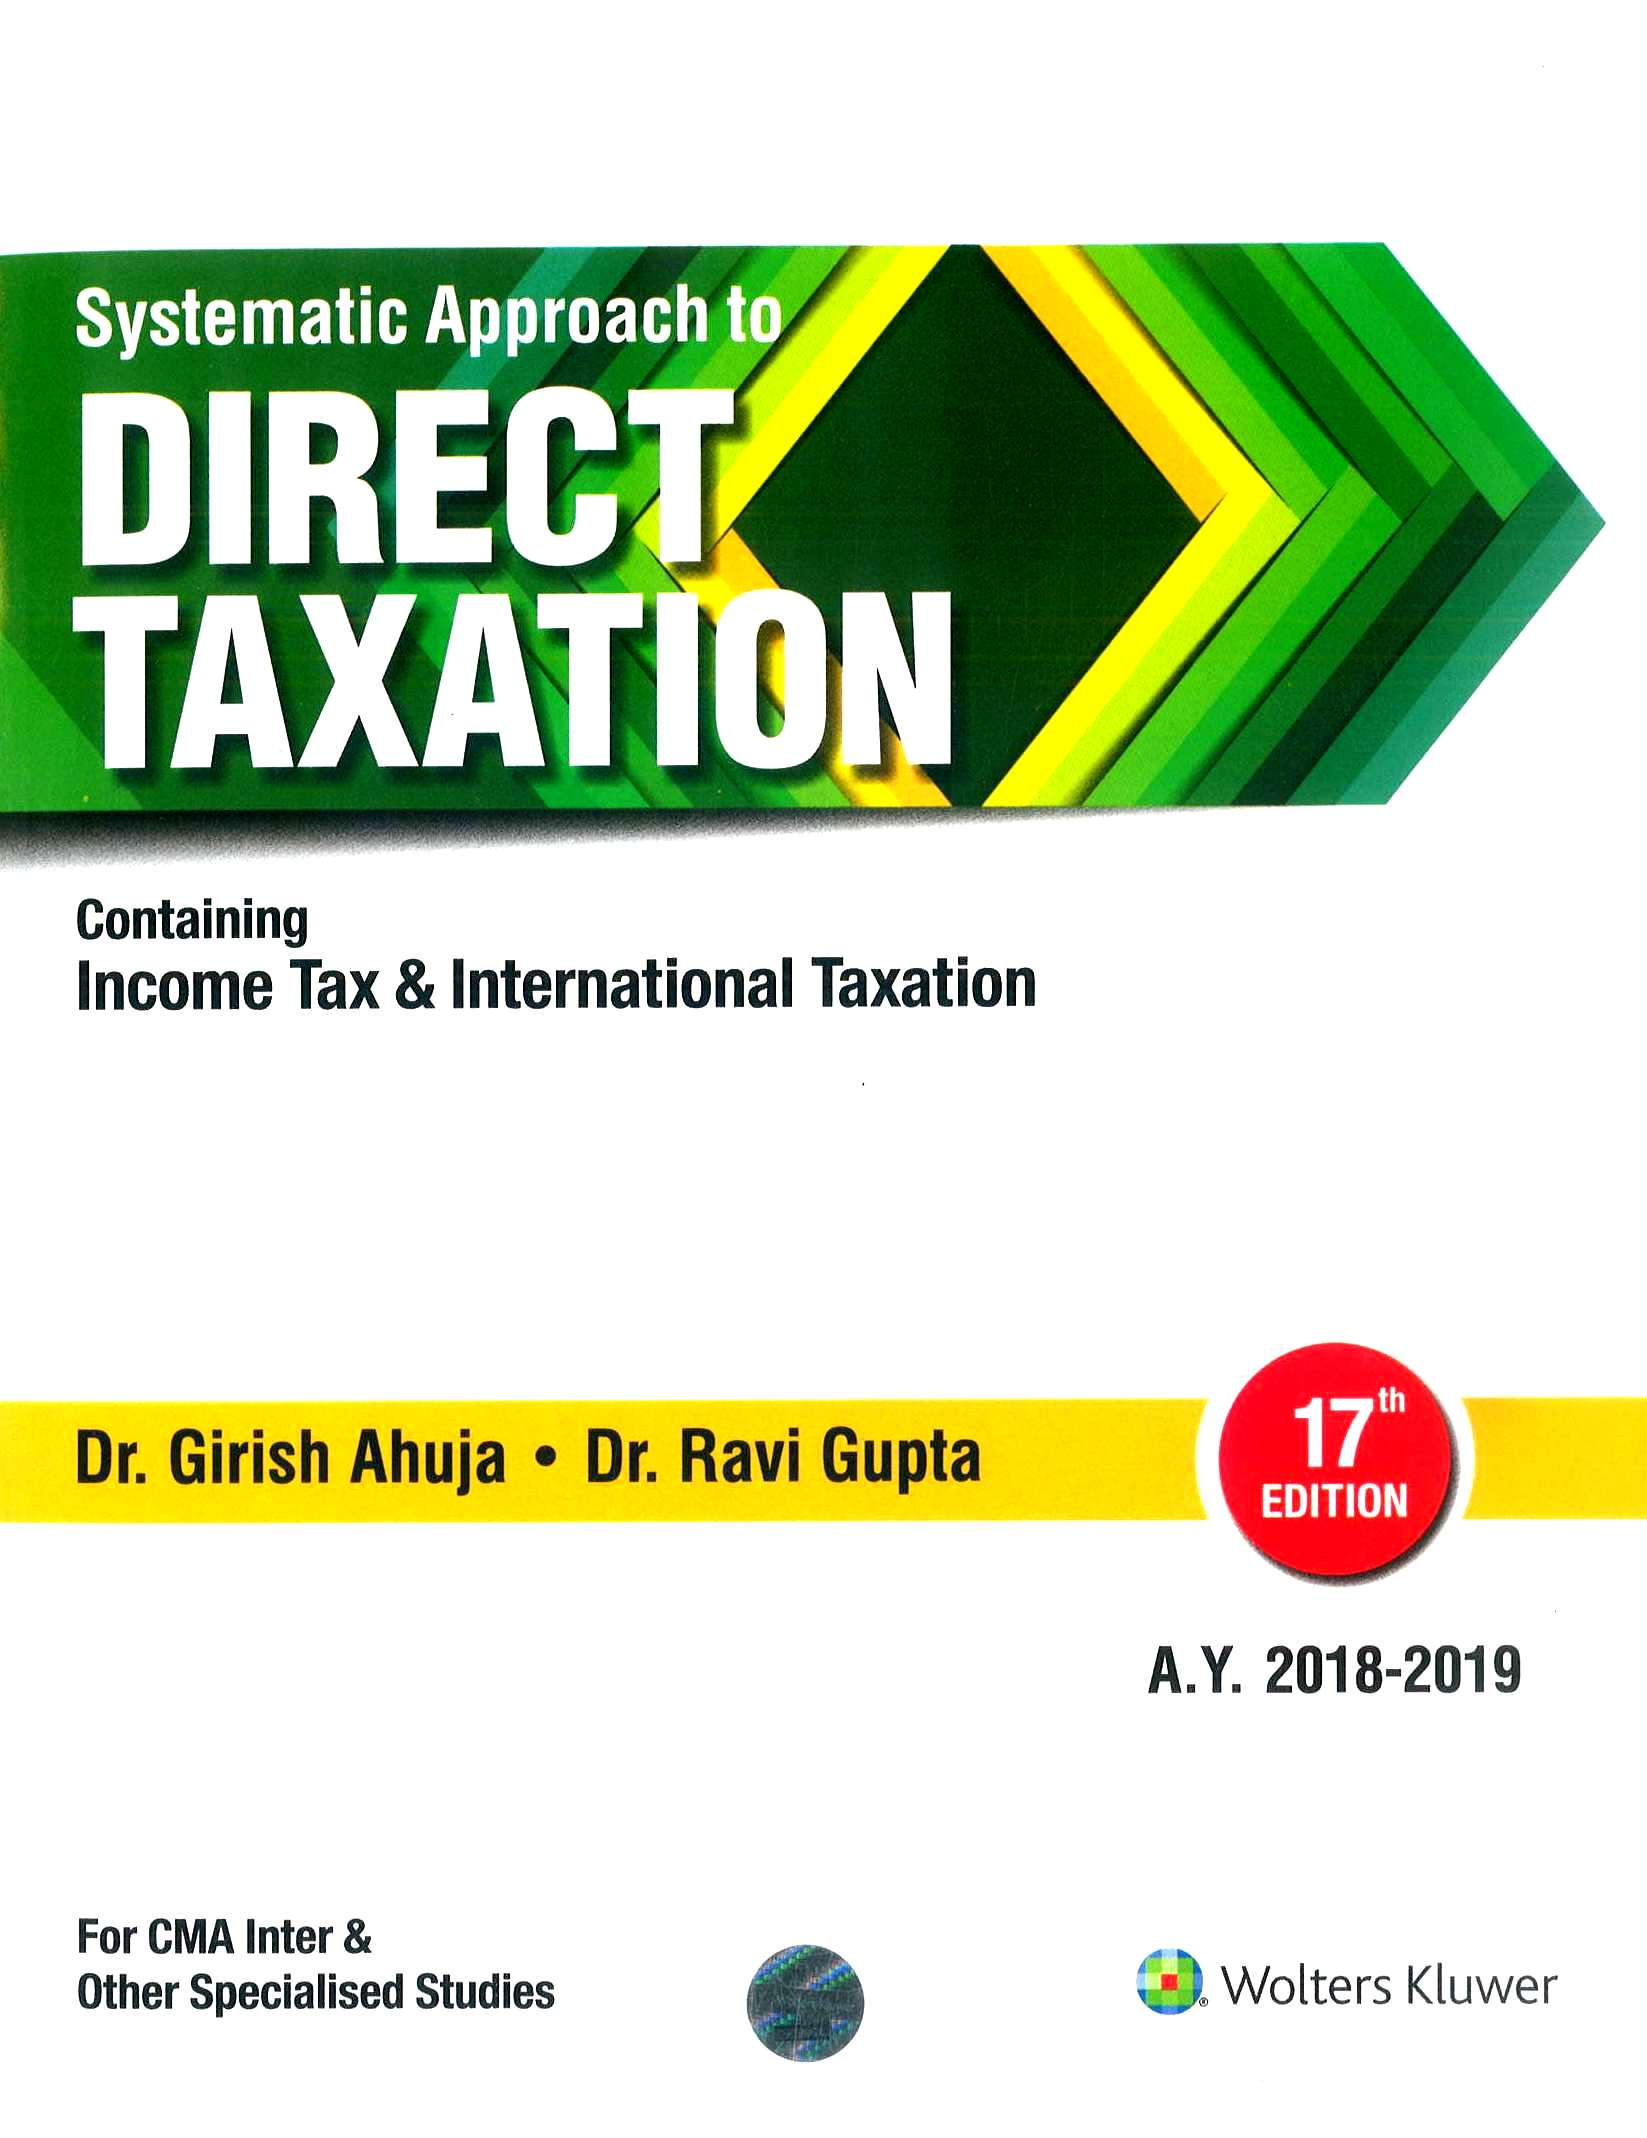 CCH Systematic Approach to Direct Taxation- Containing Income Tax & International Taxation, 17th edition 2018 for Dec 2018  for CMA Inter by Dr. Girish Ahuja and Dr. Ravi Gupta